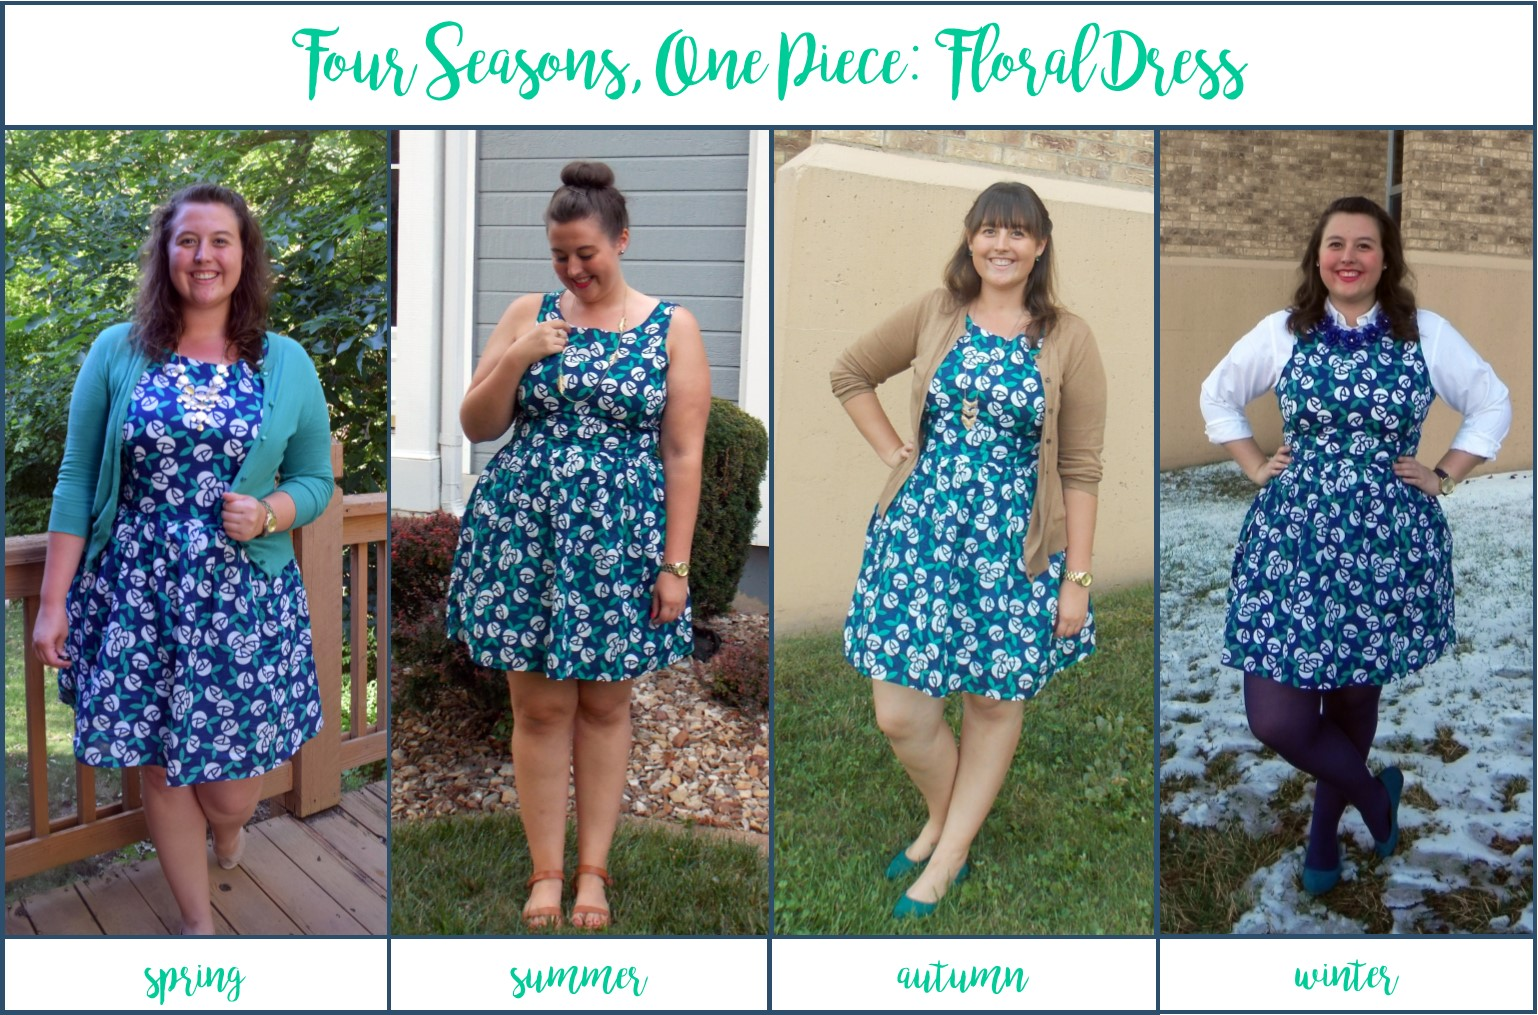 Pictures of dresses of different seasons in life